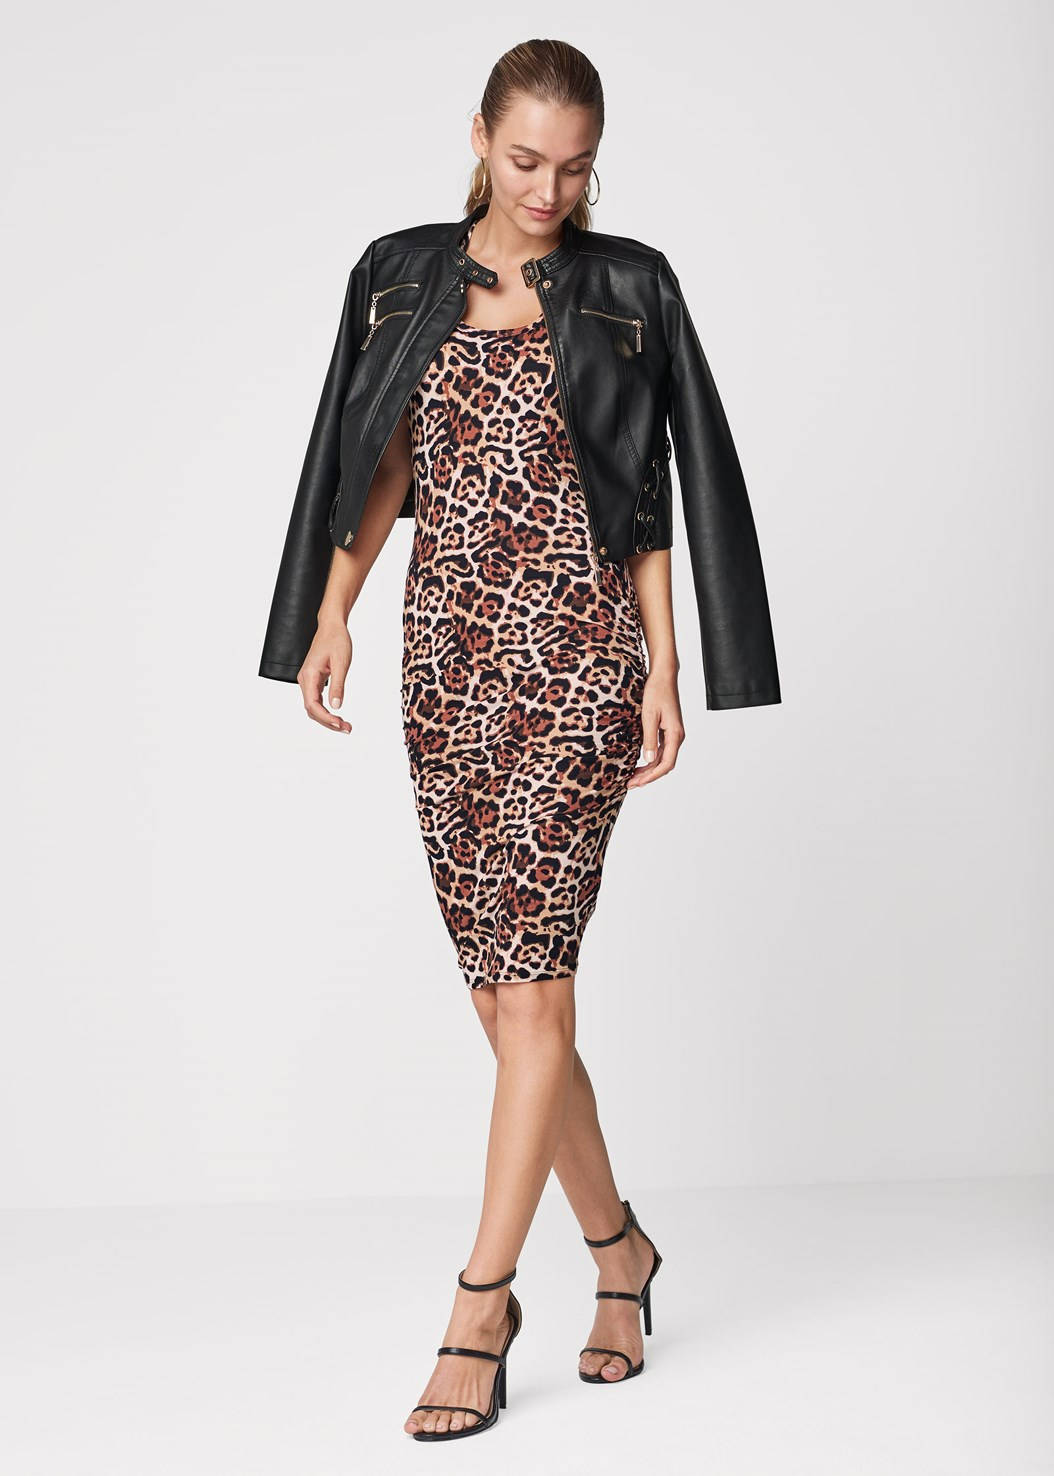 Sleeveless Ruched Bodycon Midi Dress,Faux Leather Lace Up Jacket,High Heel Strappy Sandals,Mixed Earring Set